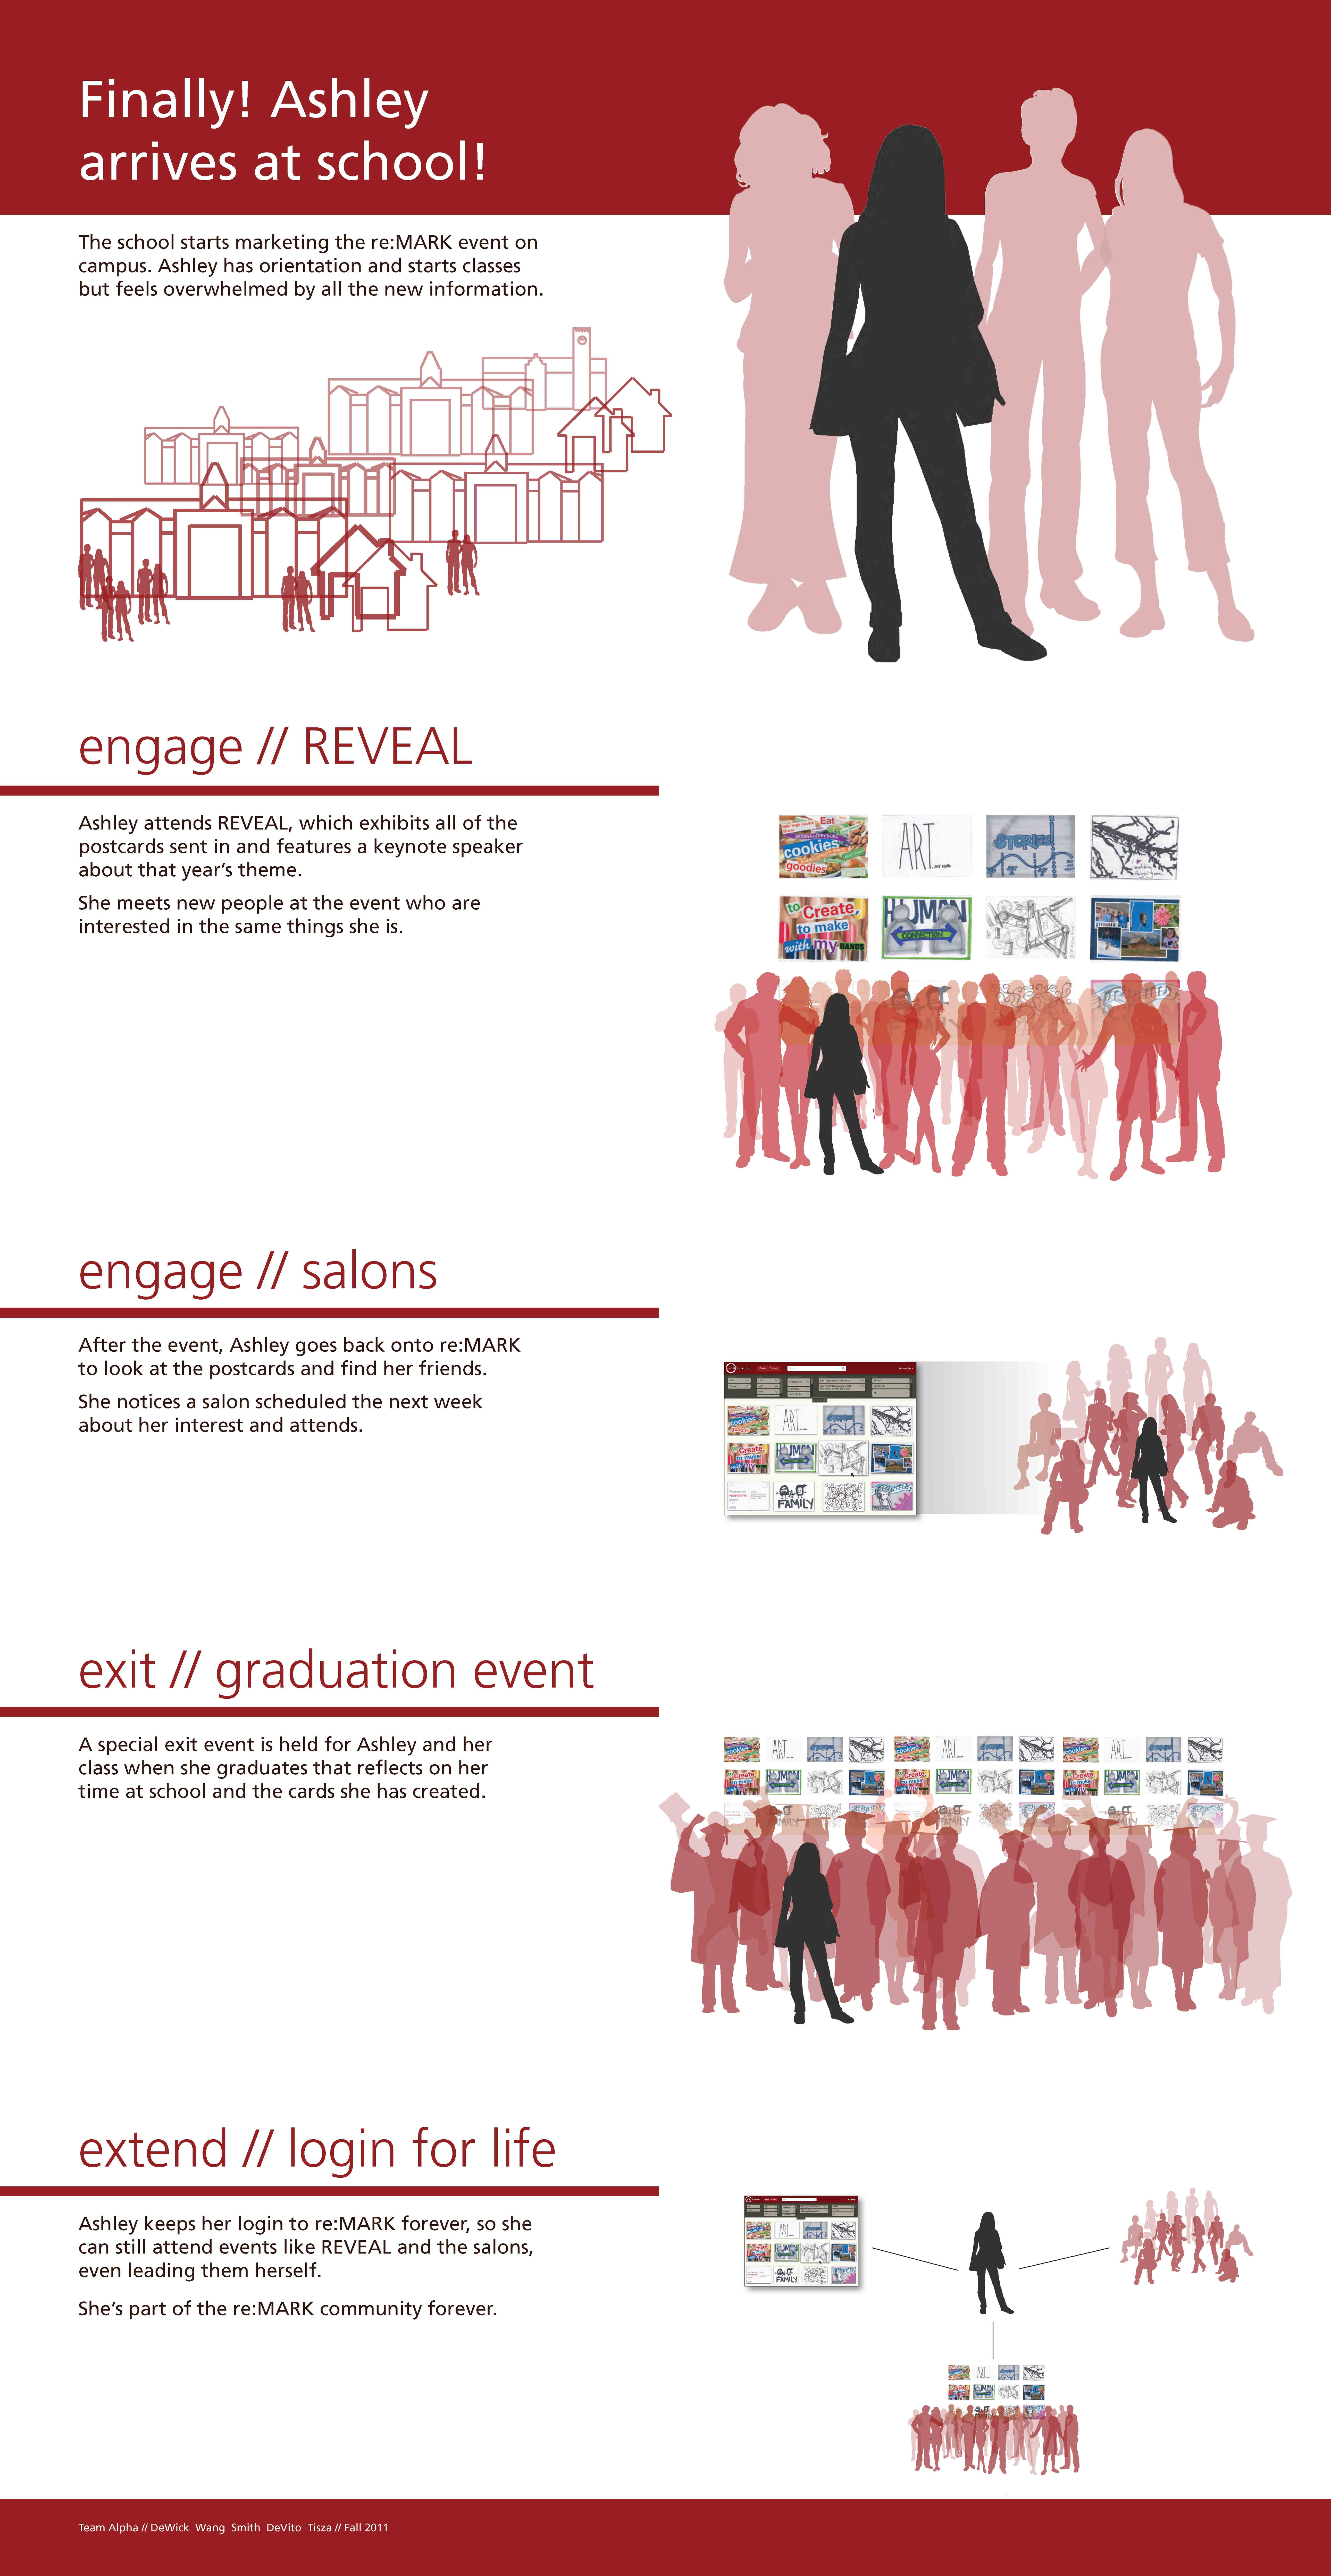 platform design re mark i dream in din integrating the personal interests of the students to collective groups and fostering the university community as a whole